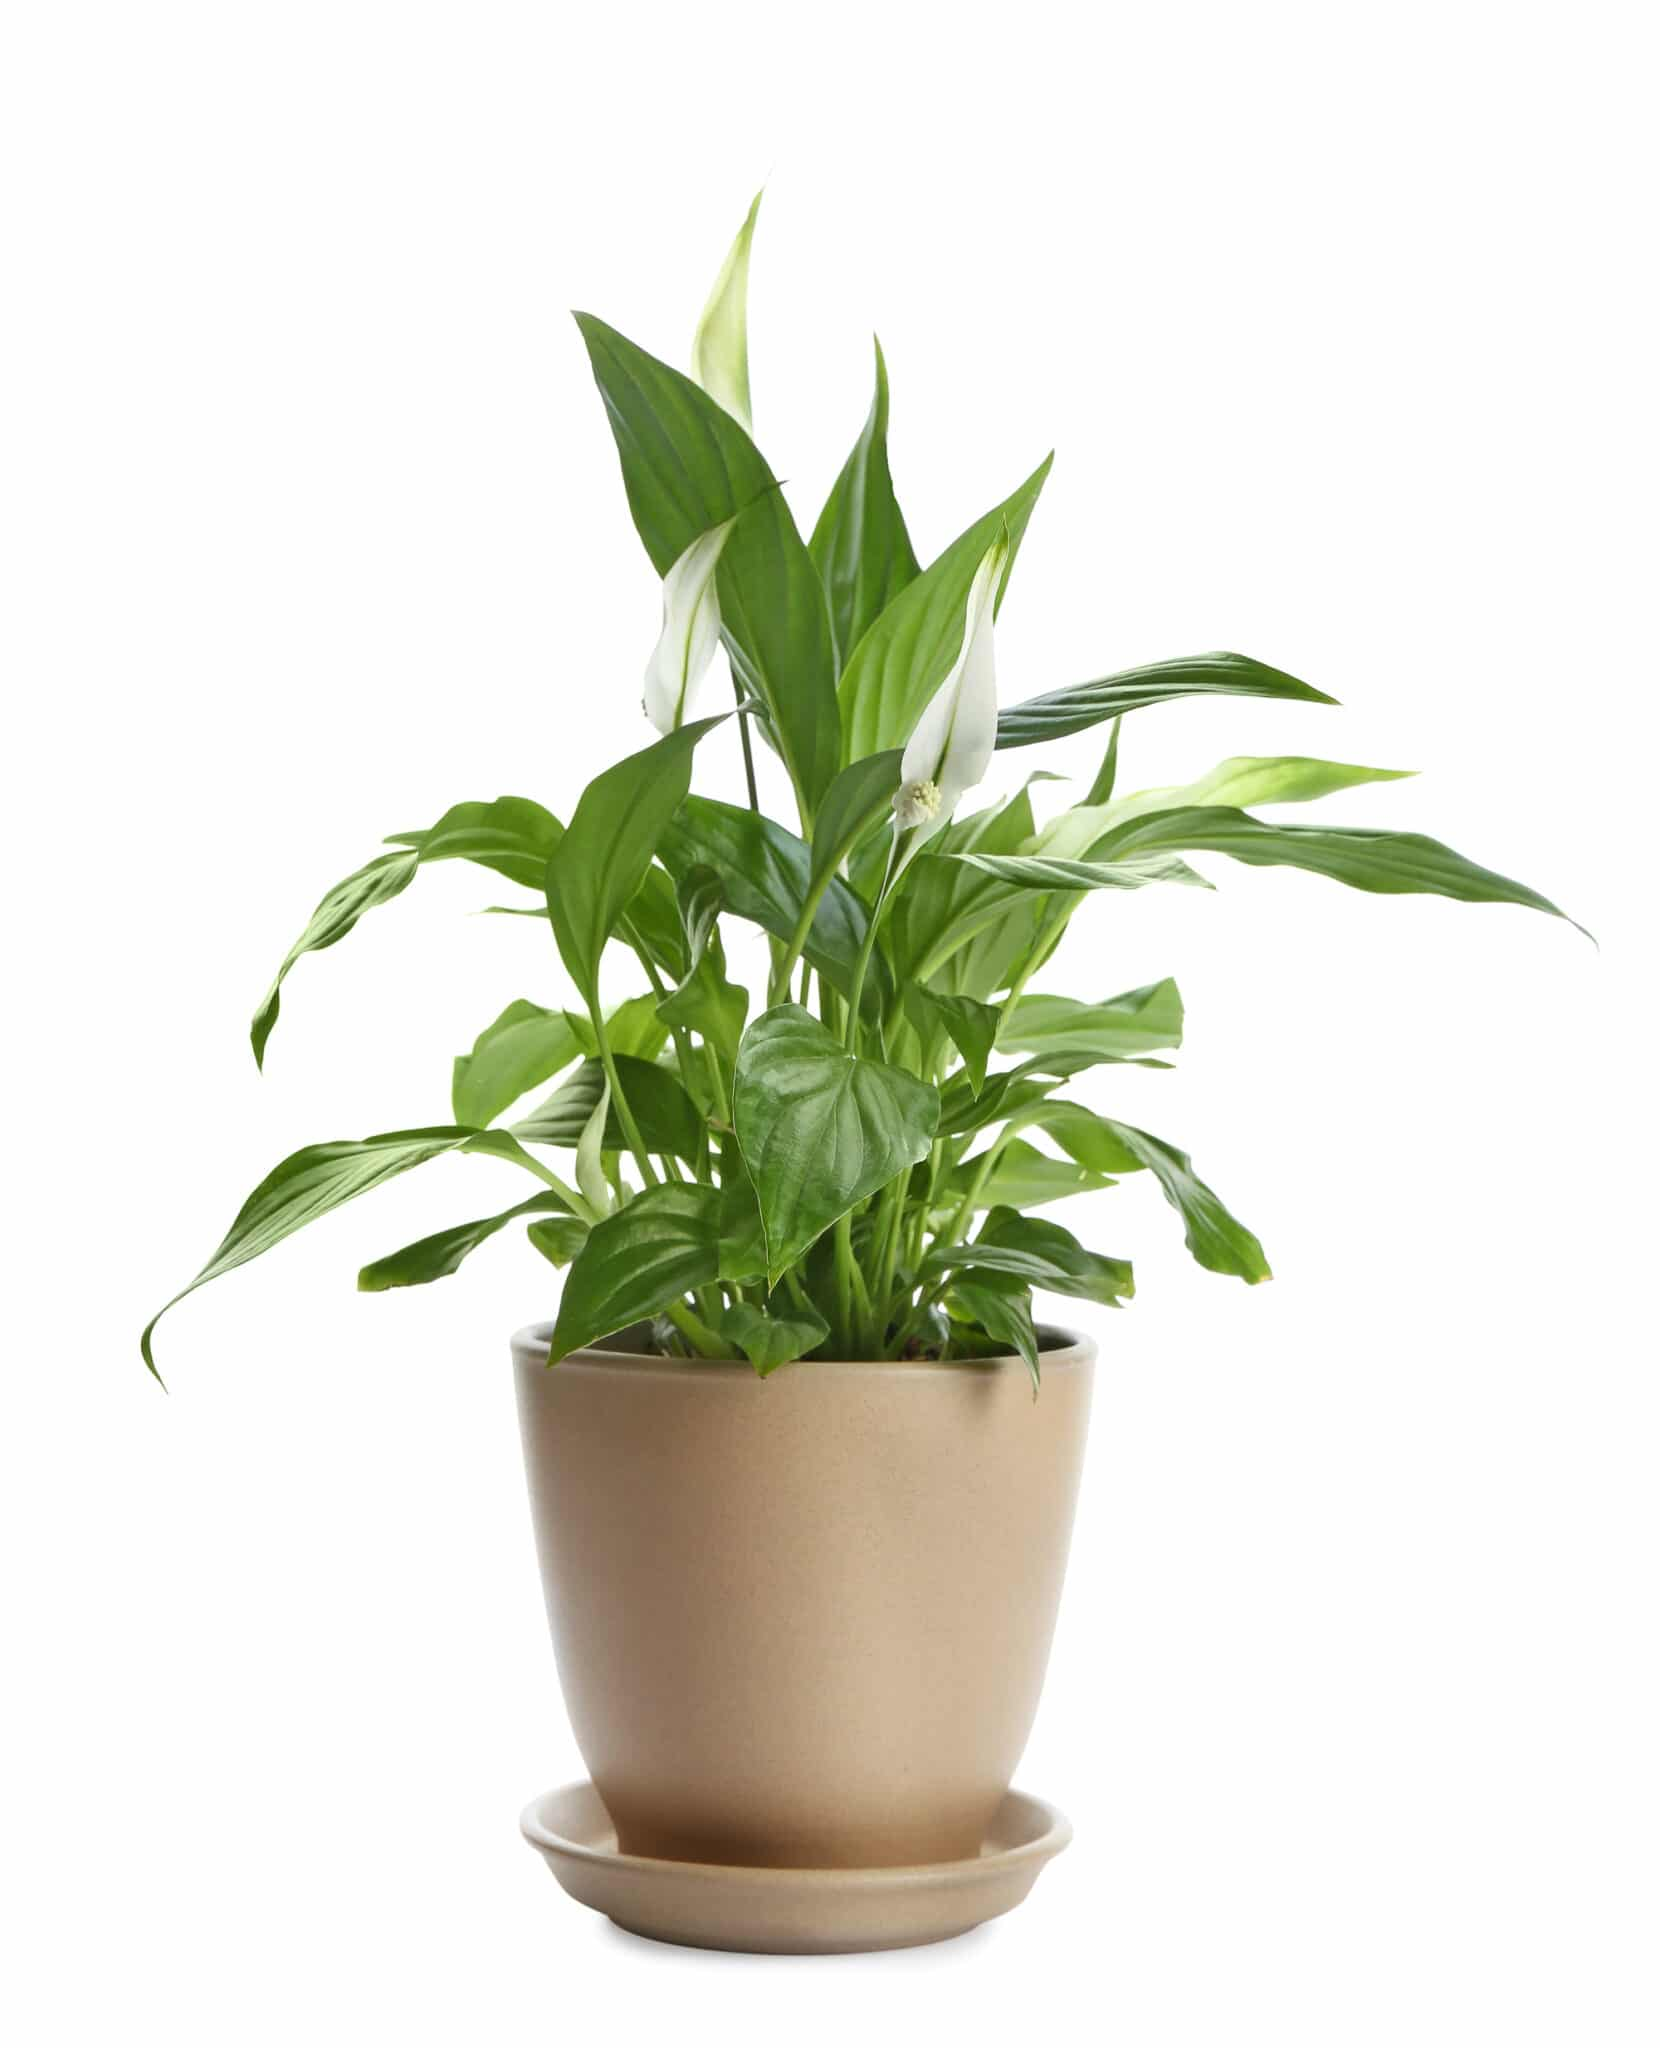 A peace lily in a pot with slender white blooms.